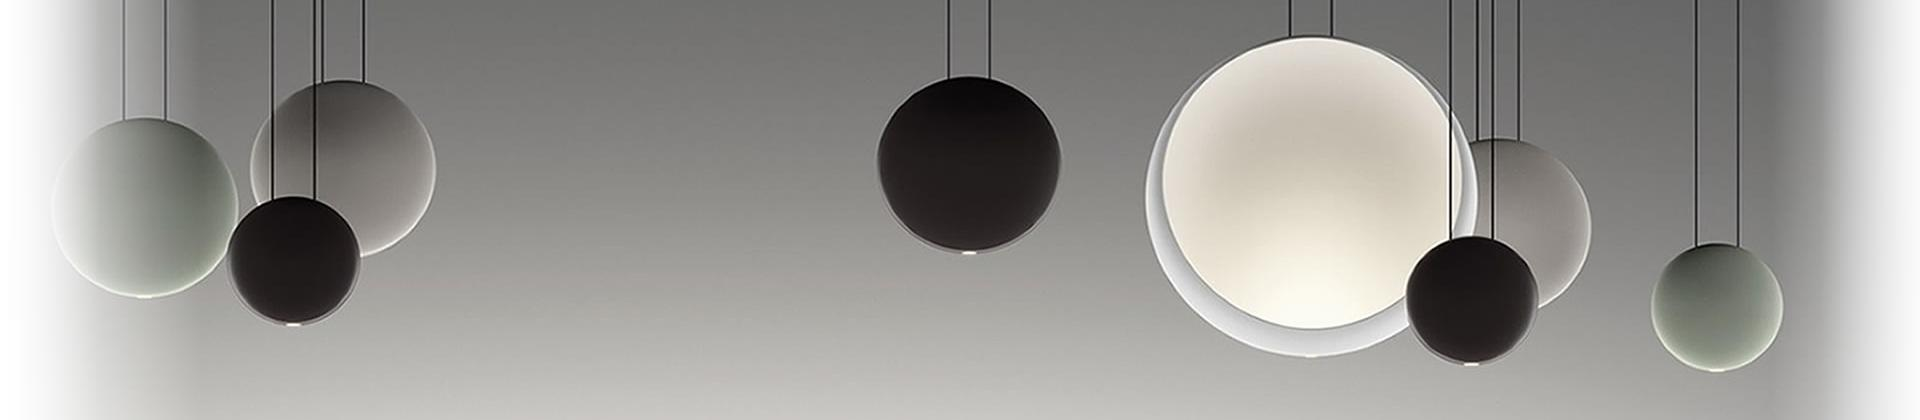 Funnel design lamps by Vibia